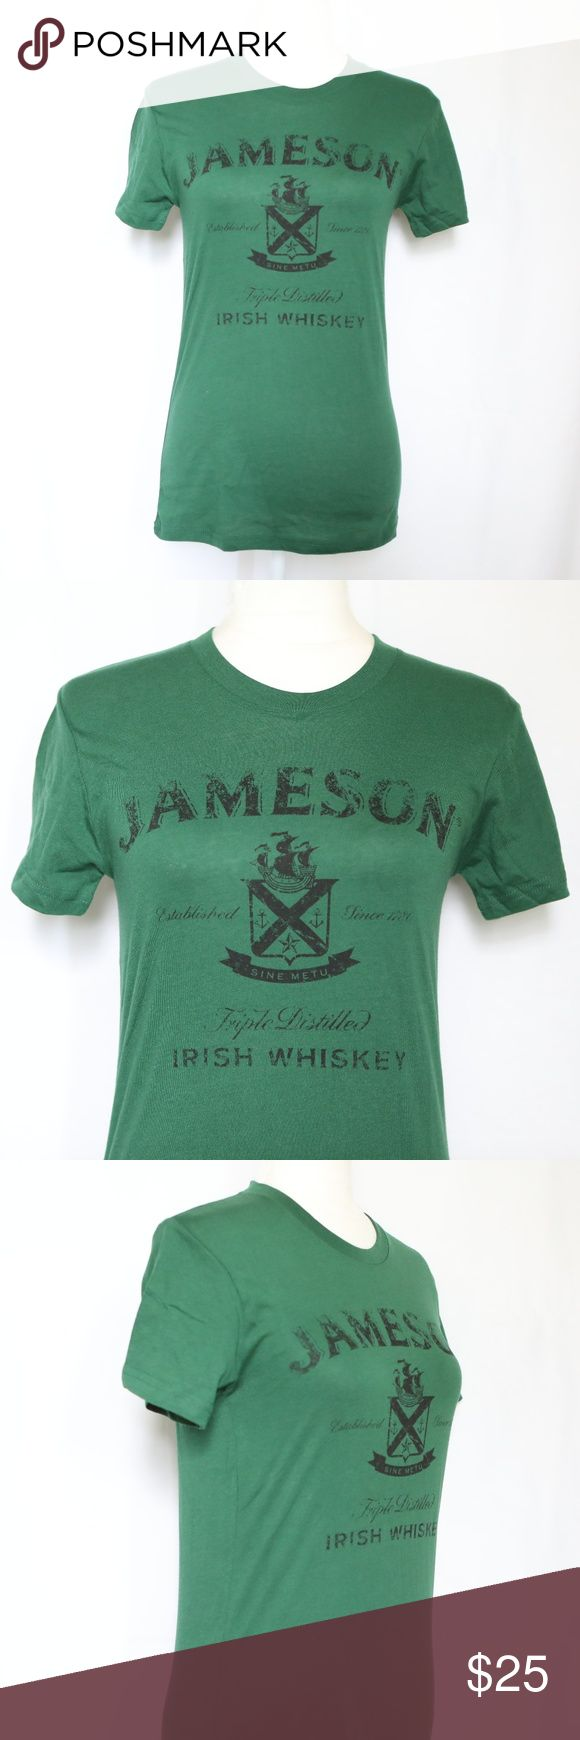 "NEW Jameson Irish Whiskey Women's Green T-shirt  L NEW Jameson Irish Whiskey Women's Green T-shirt  Large 60% Cotton, 40% polyester (it may shrink after wash)  Measurements taken with garment flat on table. Armpit to armpit: 16"" Length: 25.5"" jameson whiskey Tops Tees - Short Sleeve"